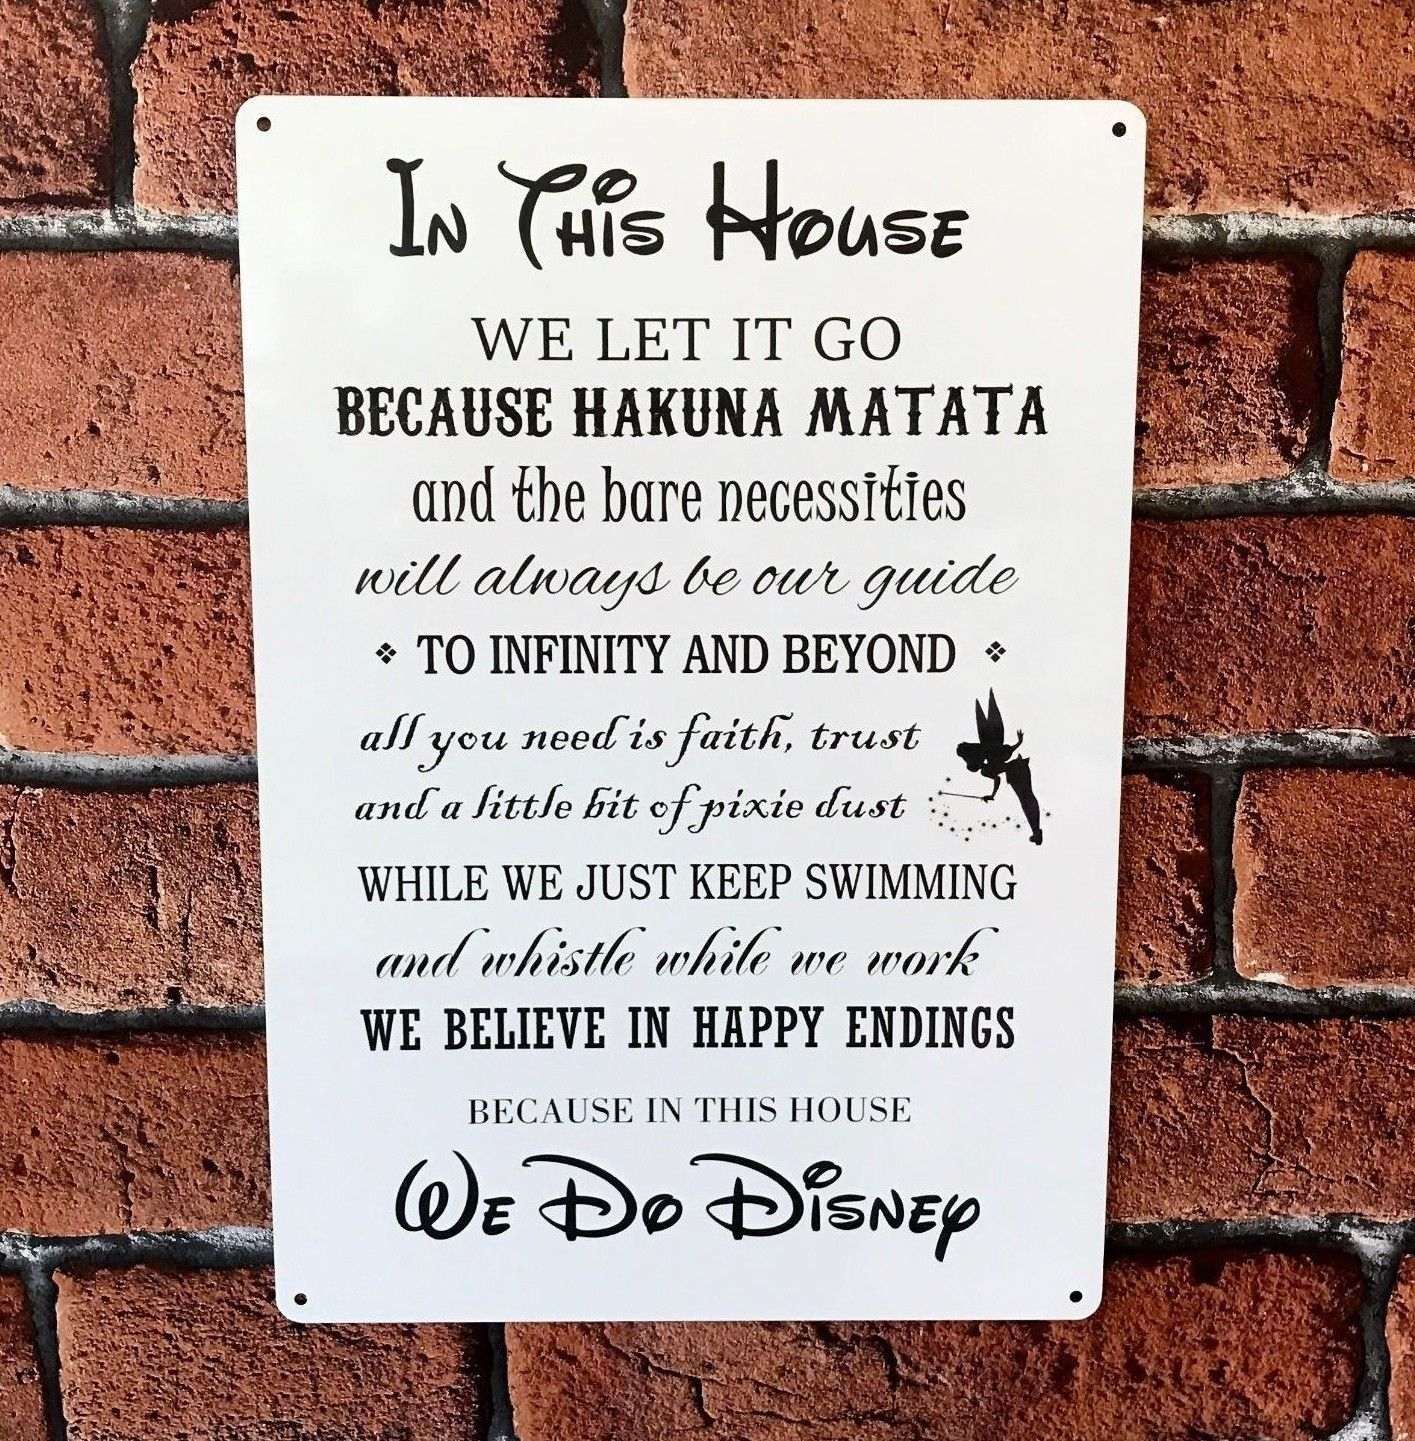 Disney Quotes In This House We Do Disney Hakuna Matata Tinkerbell